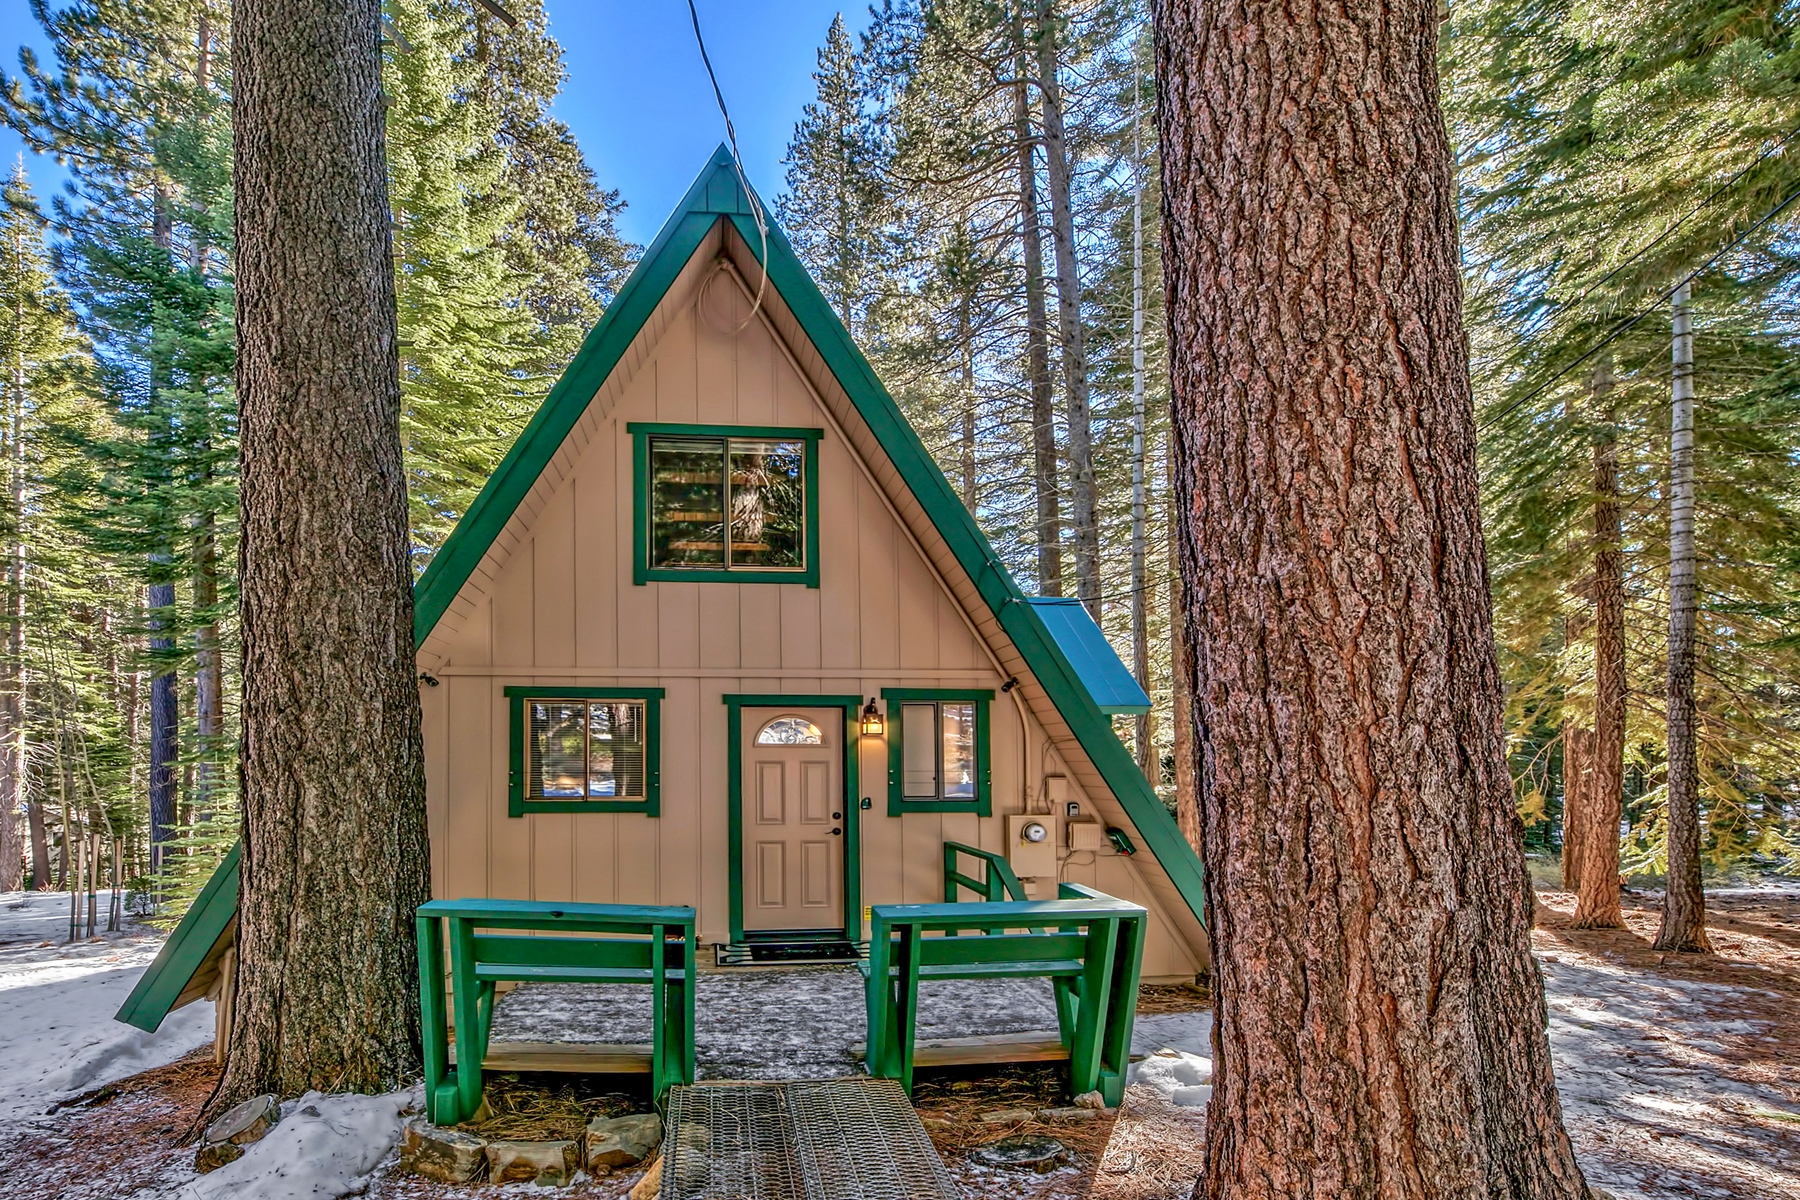 Single Family Home for Active at 1889 Normuk St, South Lake Tahoe Ca 96150 1889 Normuk Street South Lake Tahoe, California 96150 United States